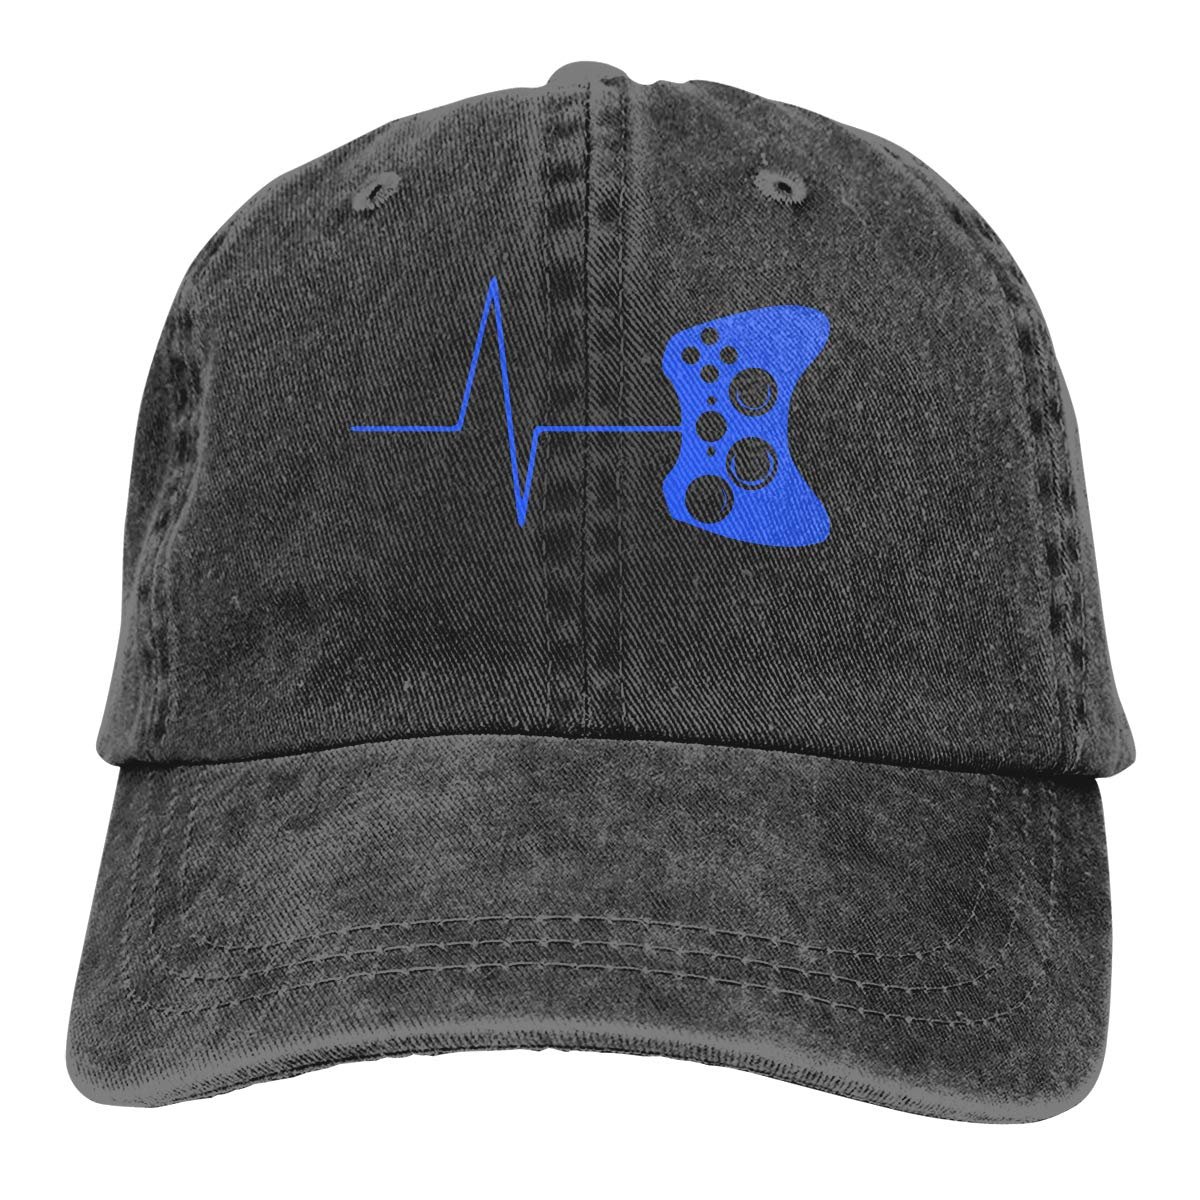 Heartbeat of A Gamer Adult Personalize Cowboy Casquette Adjustable Baseball Cap